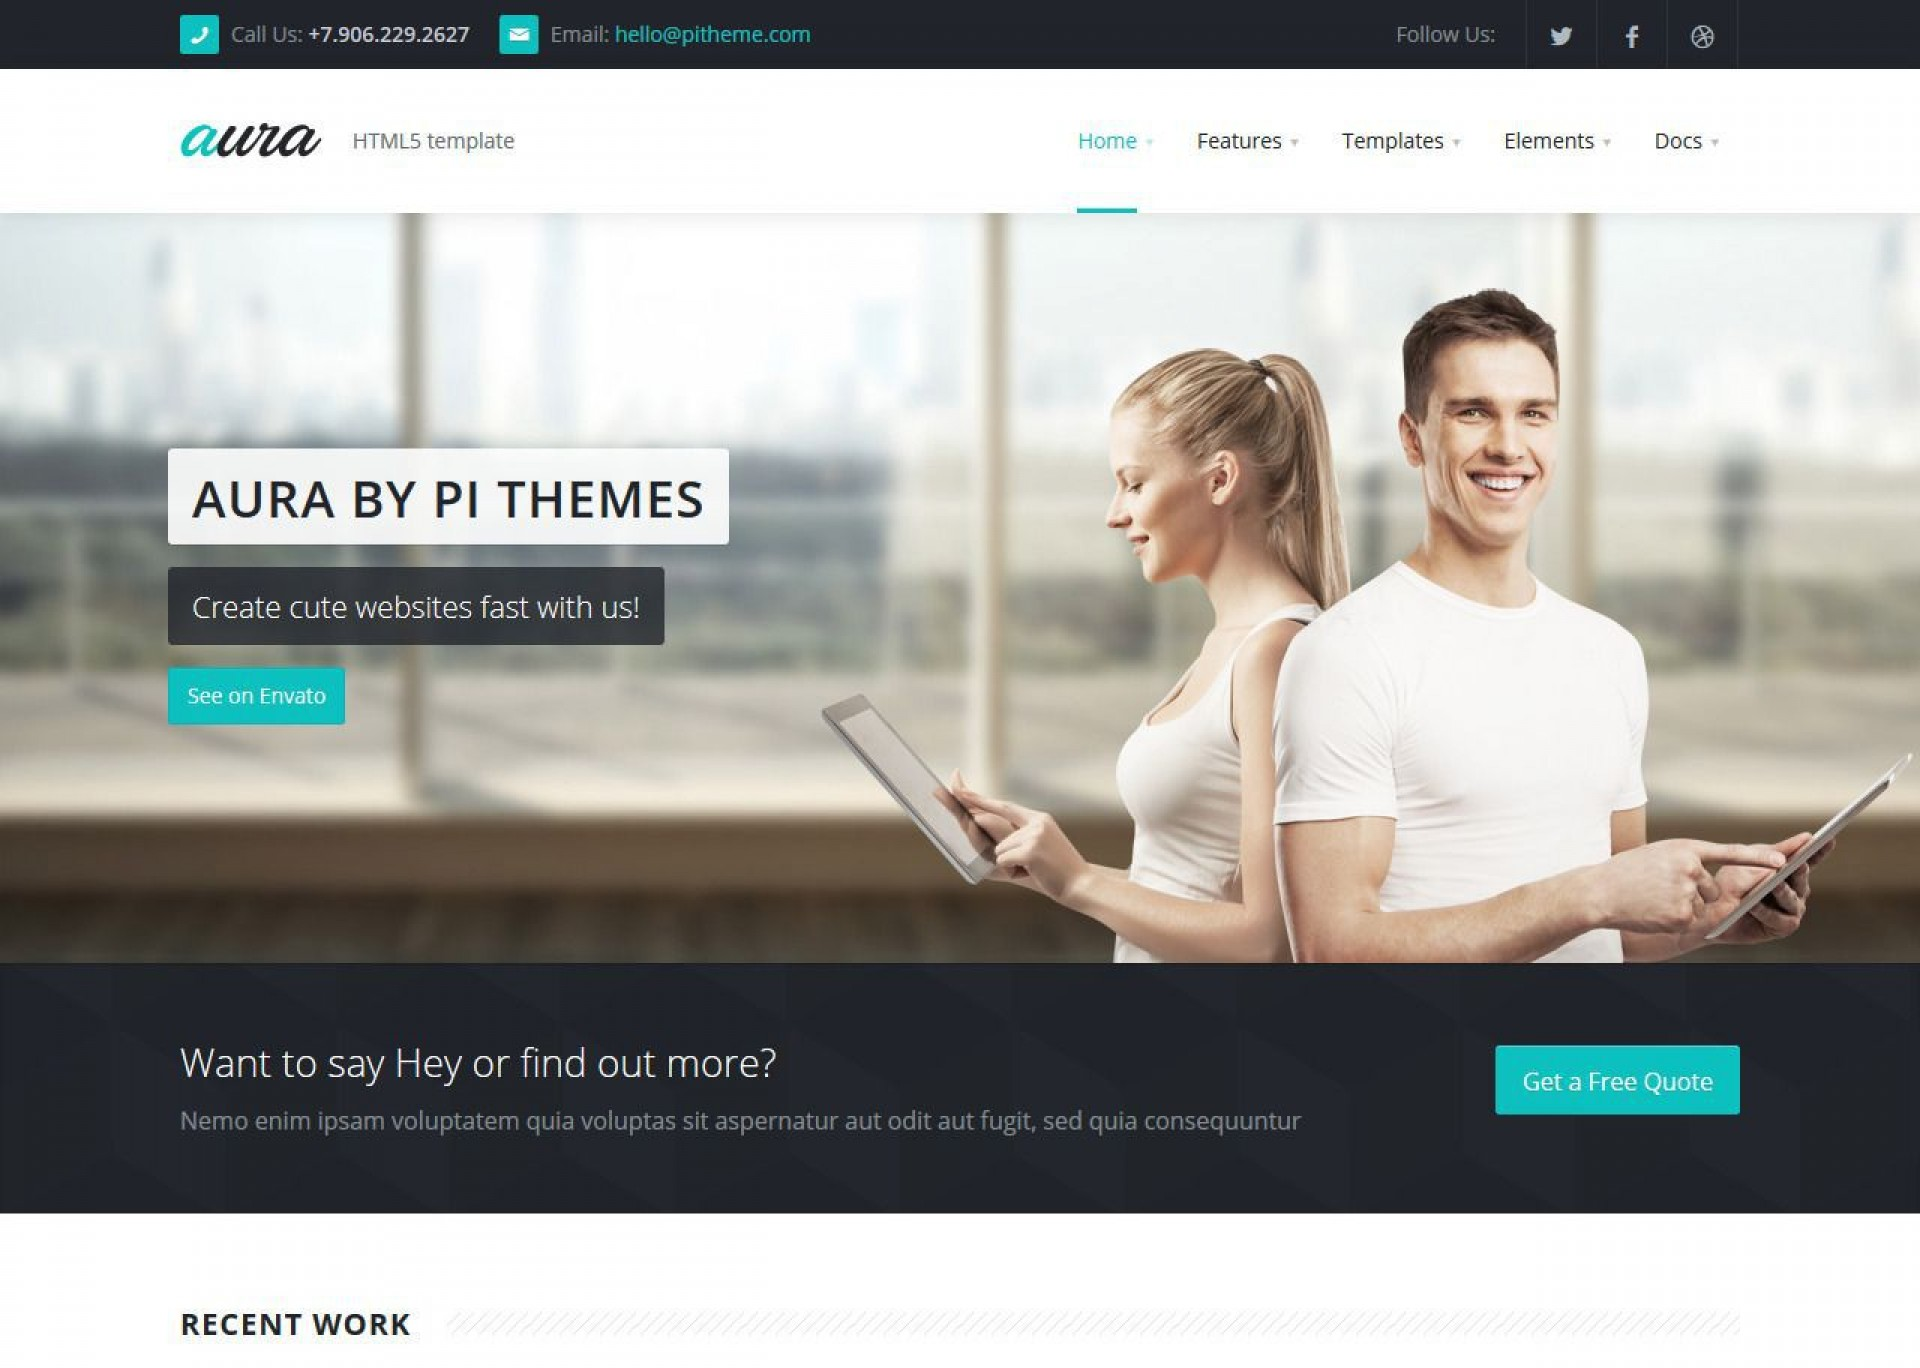 003 Impressive Open Source Website Template Image  Templates Web Free Ecommerce Page1920